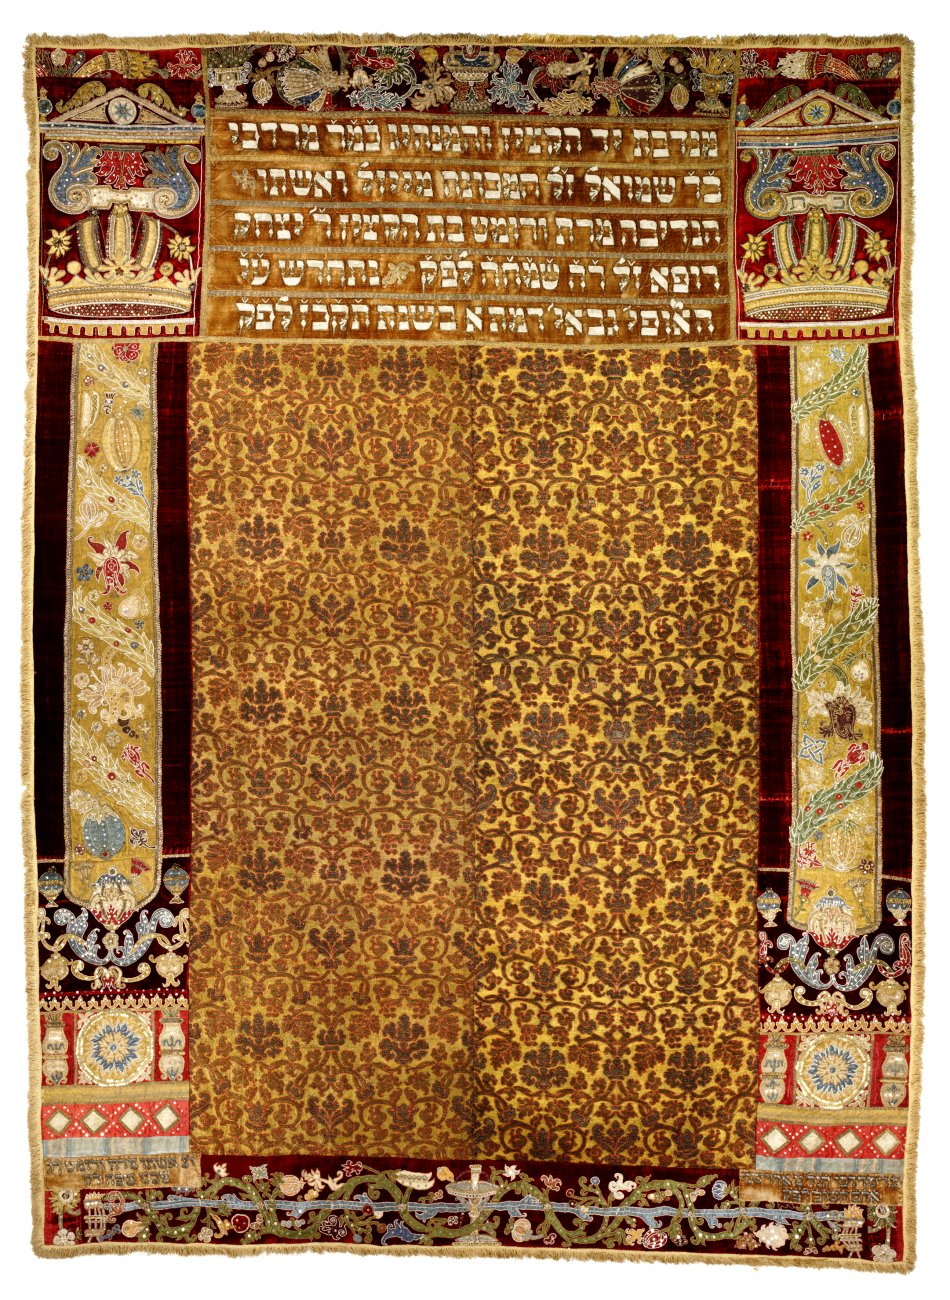 Torah curtain donated by Mordecai Maisel and his wife Frummet